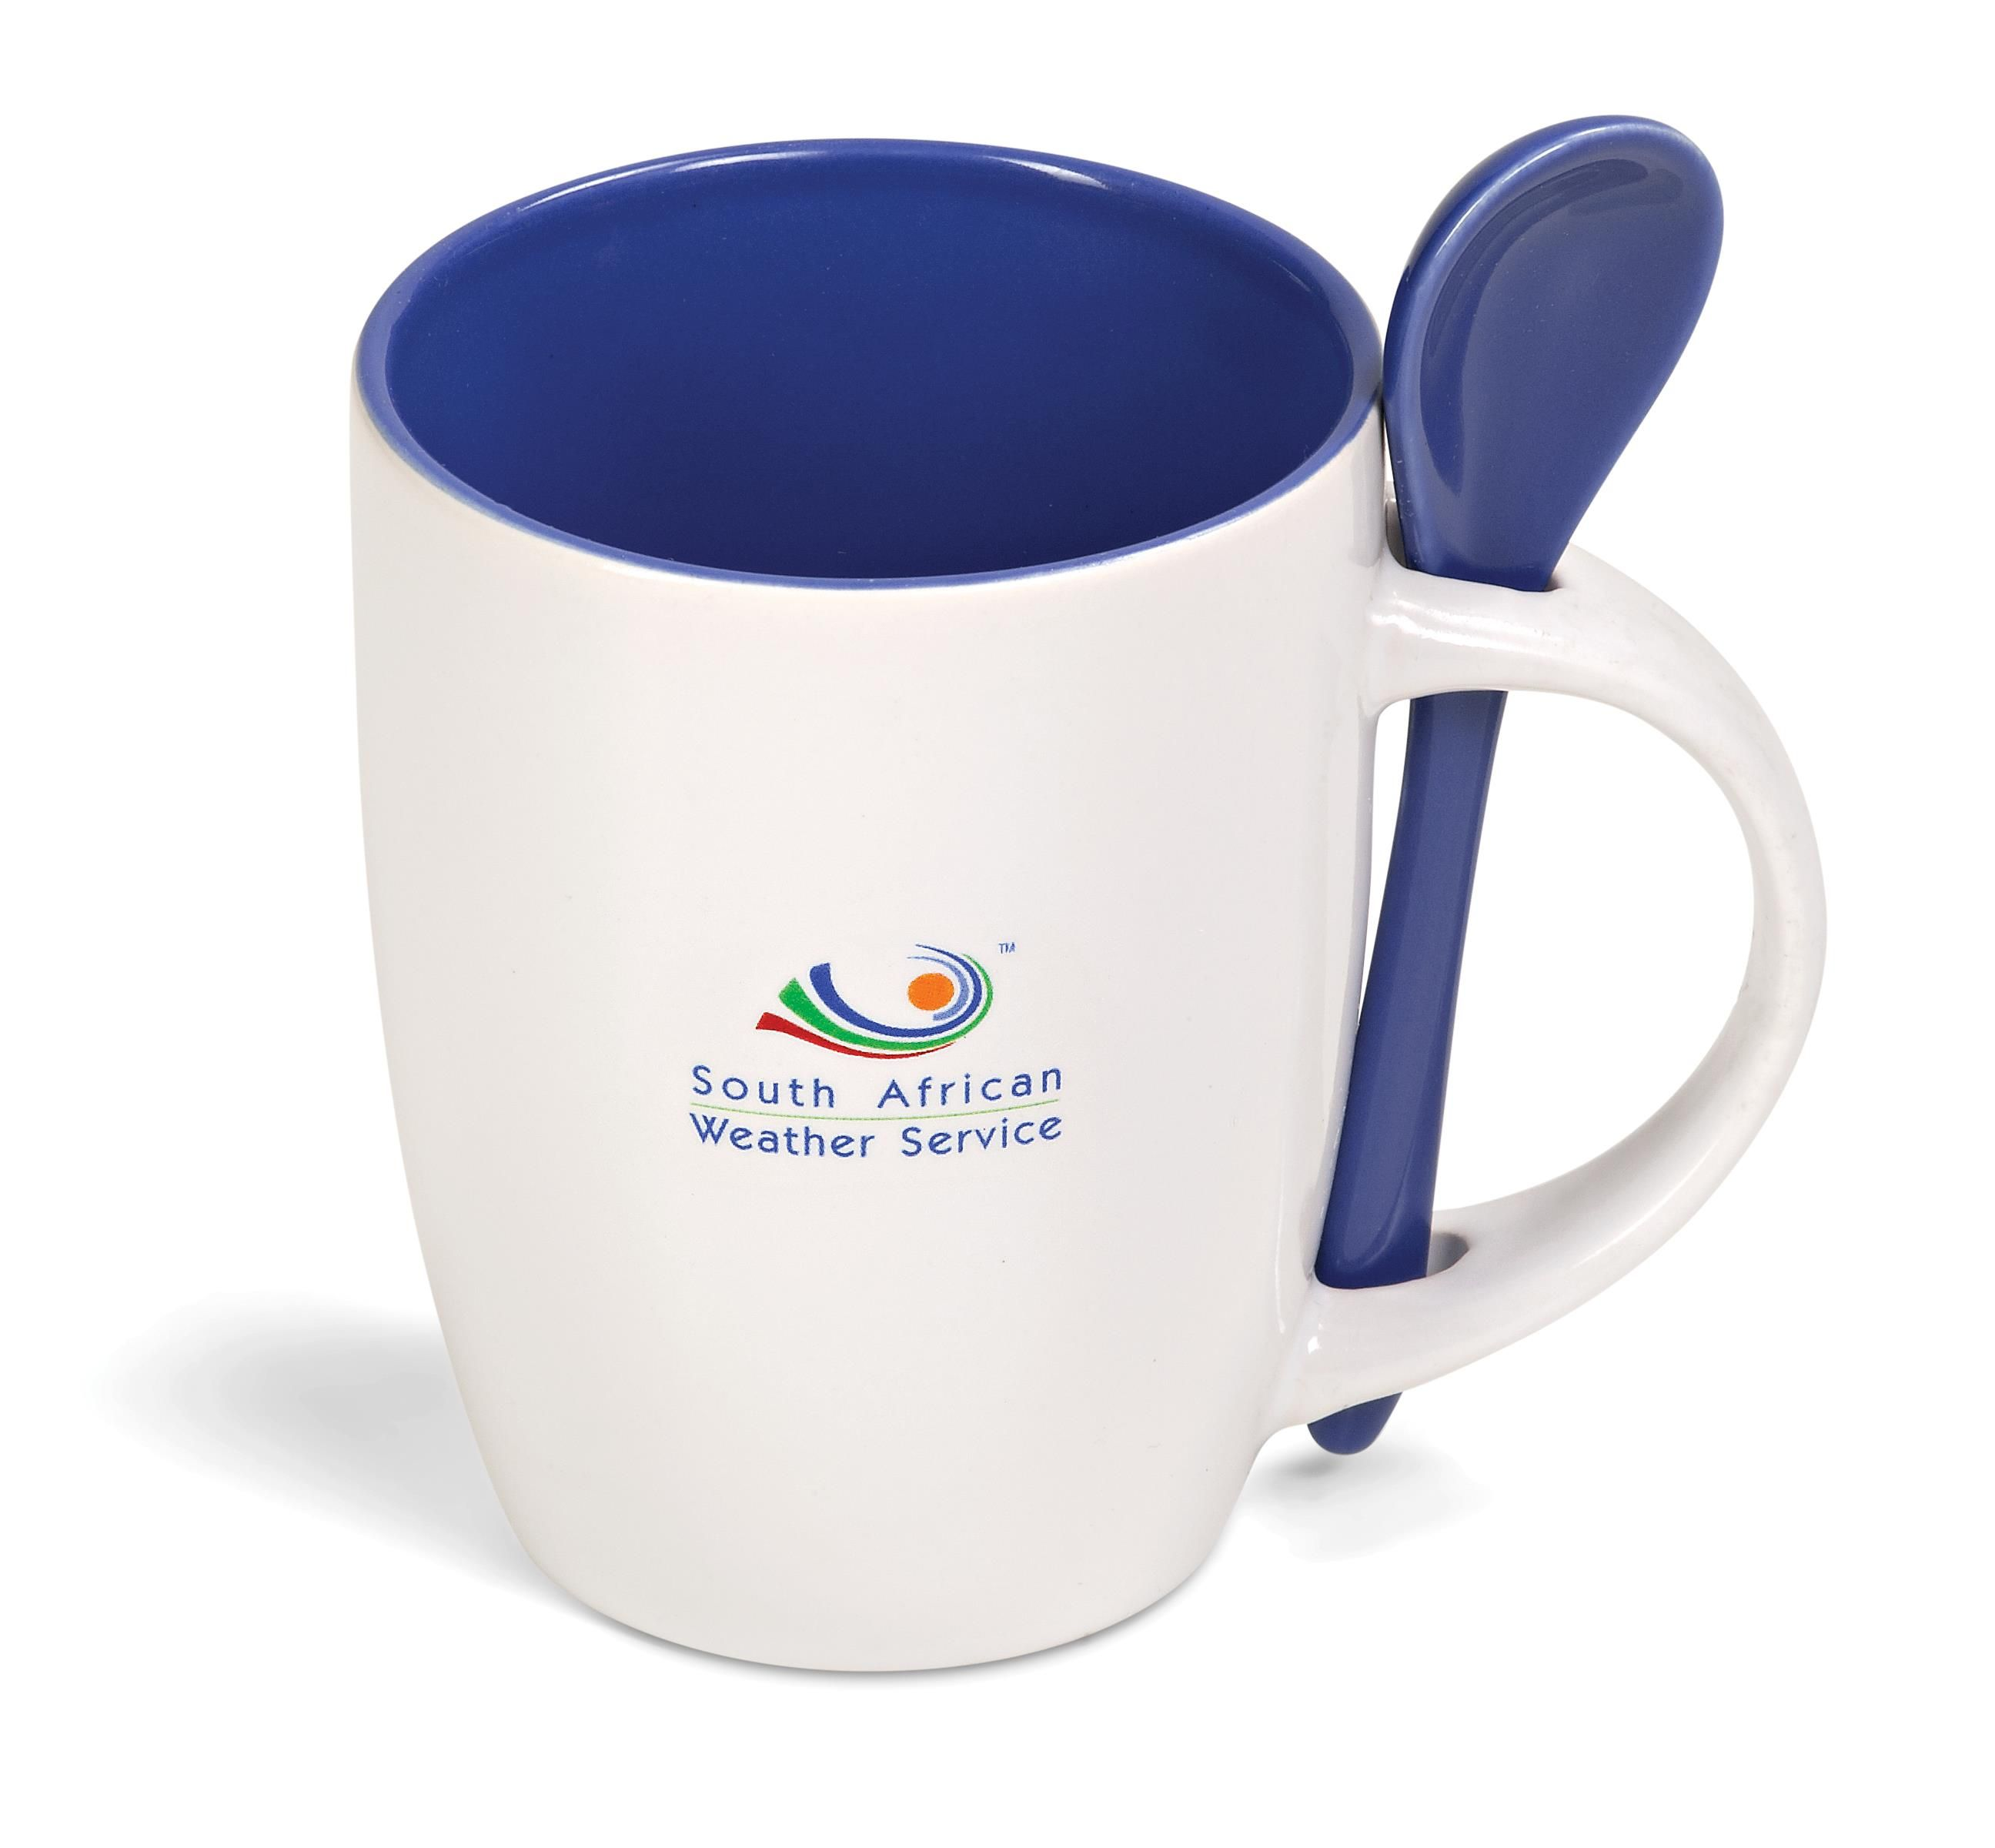 Scoop Mug Ceramic Coffee Mug With A Spoon In The Handle This Is A Great Promotional Item For Busy Office Workers And Coff Mugs Ceramic Mugs Sublimation Mugs